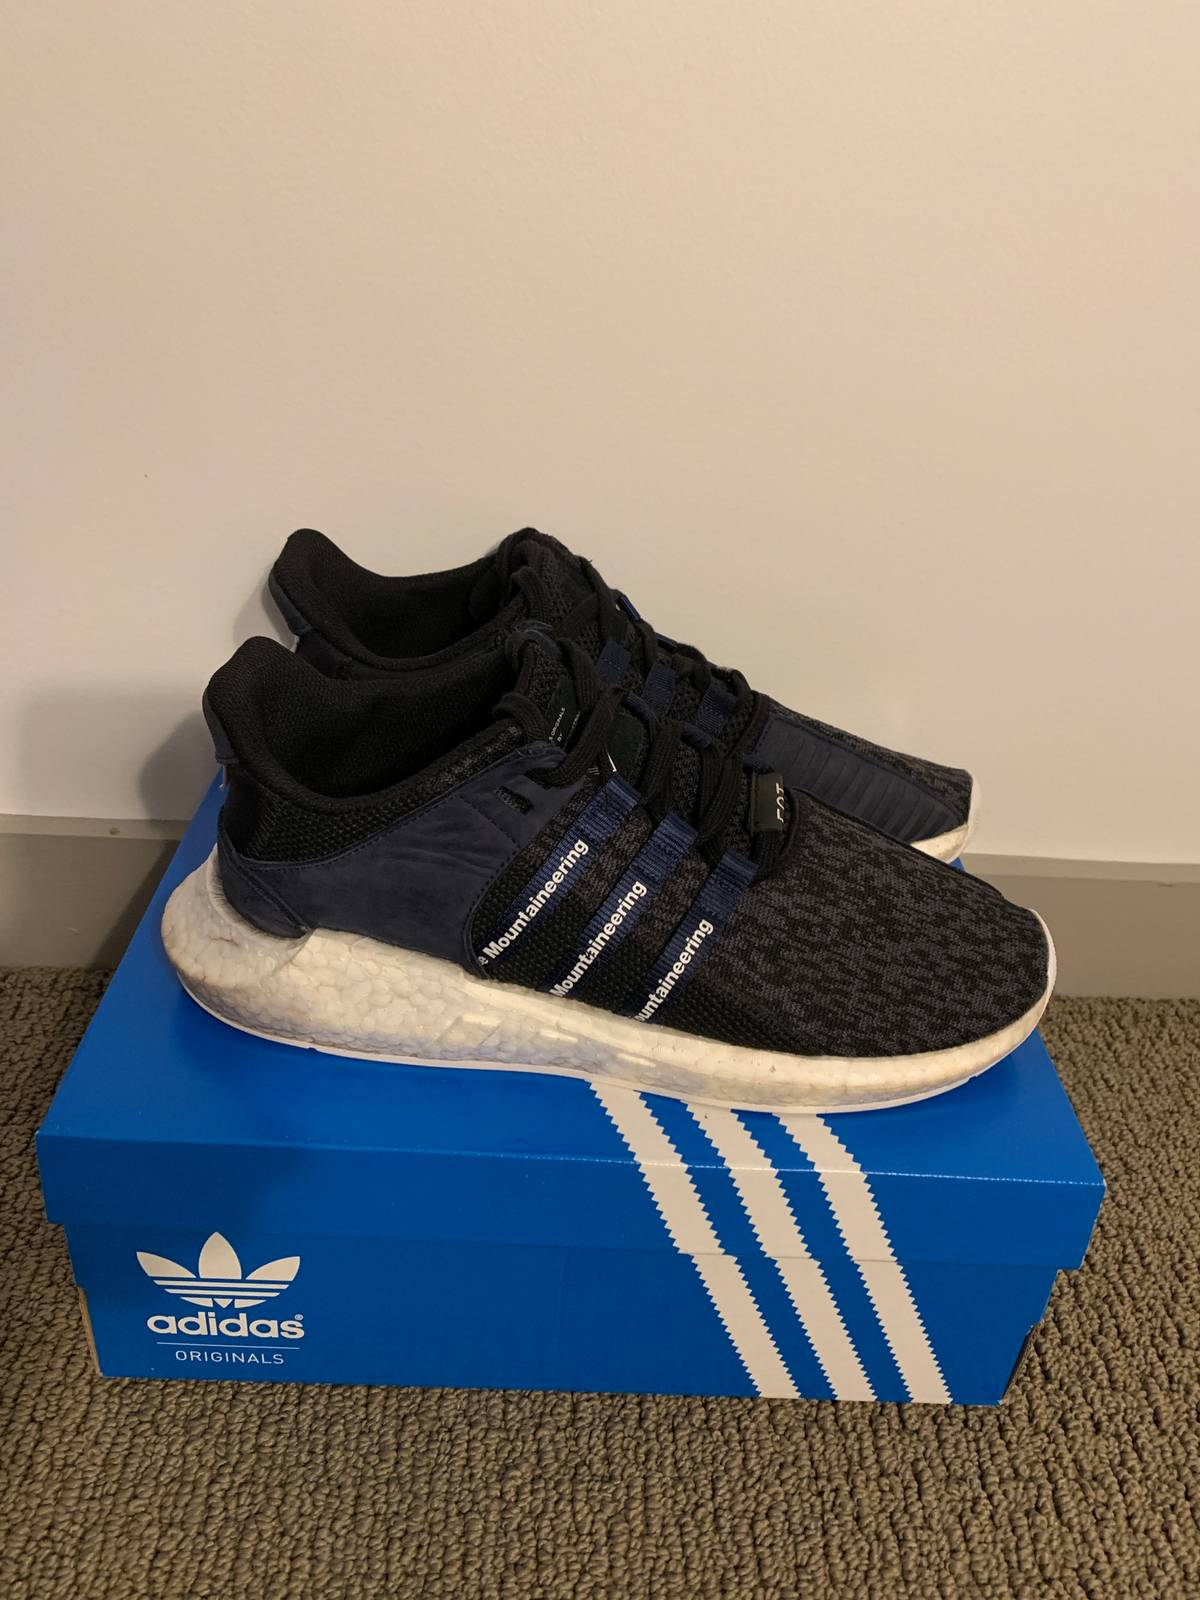 buy online b6006 6e79f Adidas adidas EQT Support Future White Mountaineering Navy Size 10 -  Low-Top Sneakers for Sale - Grailed